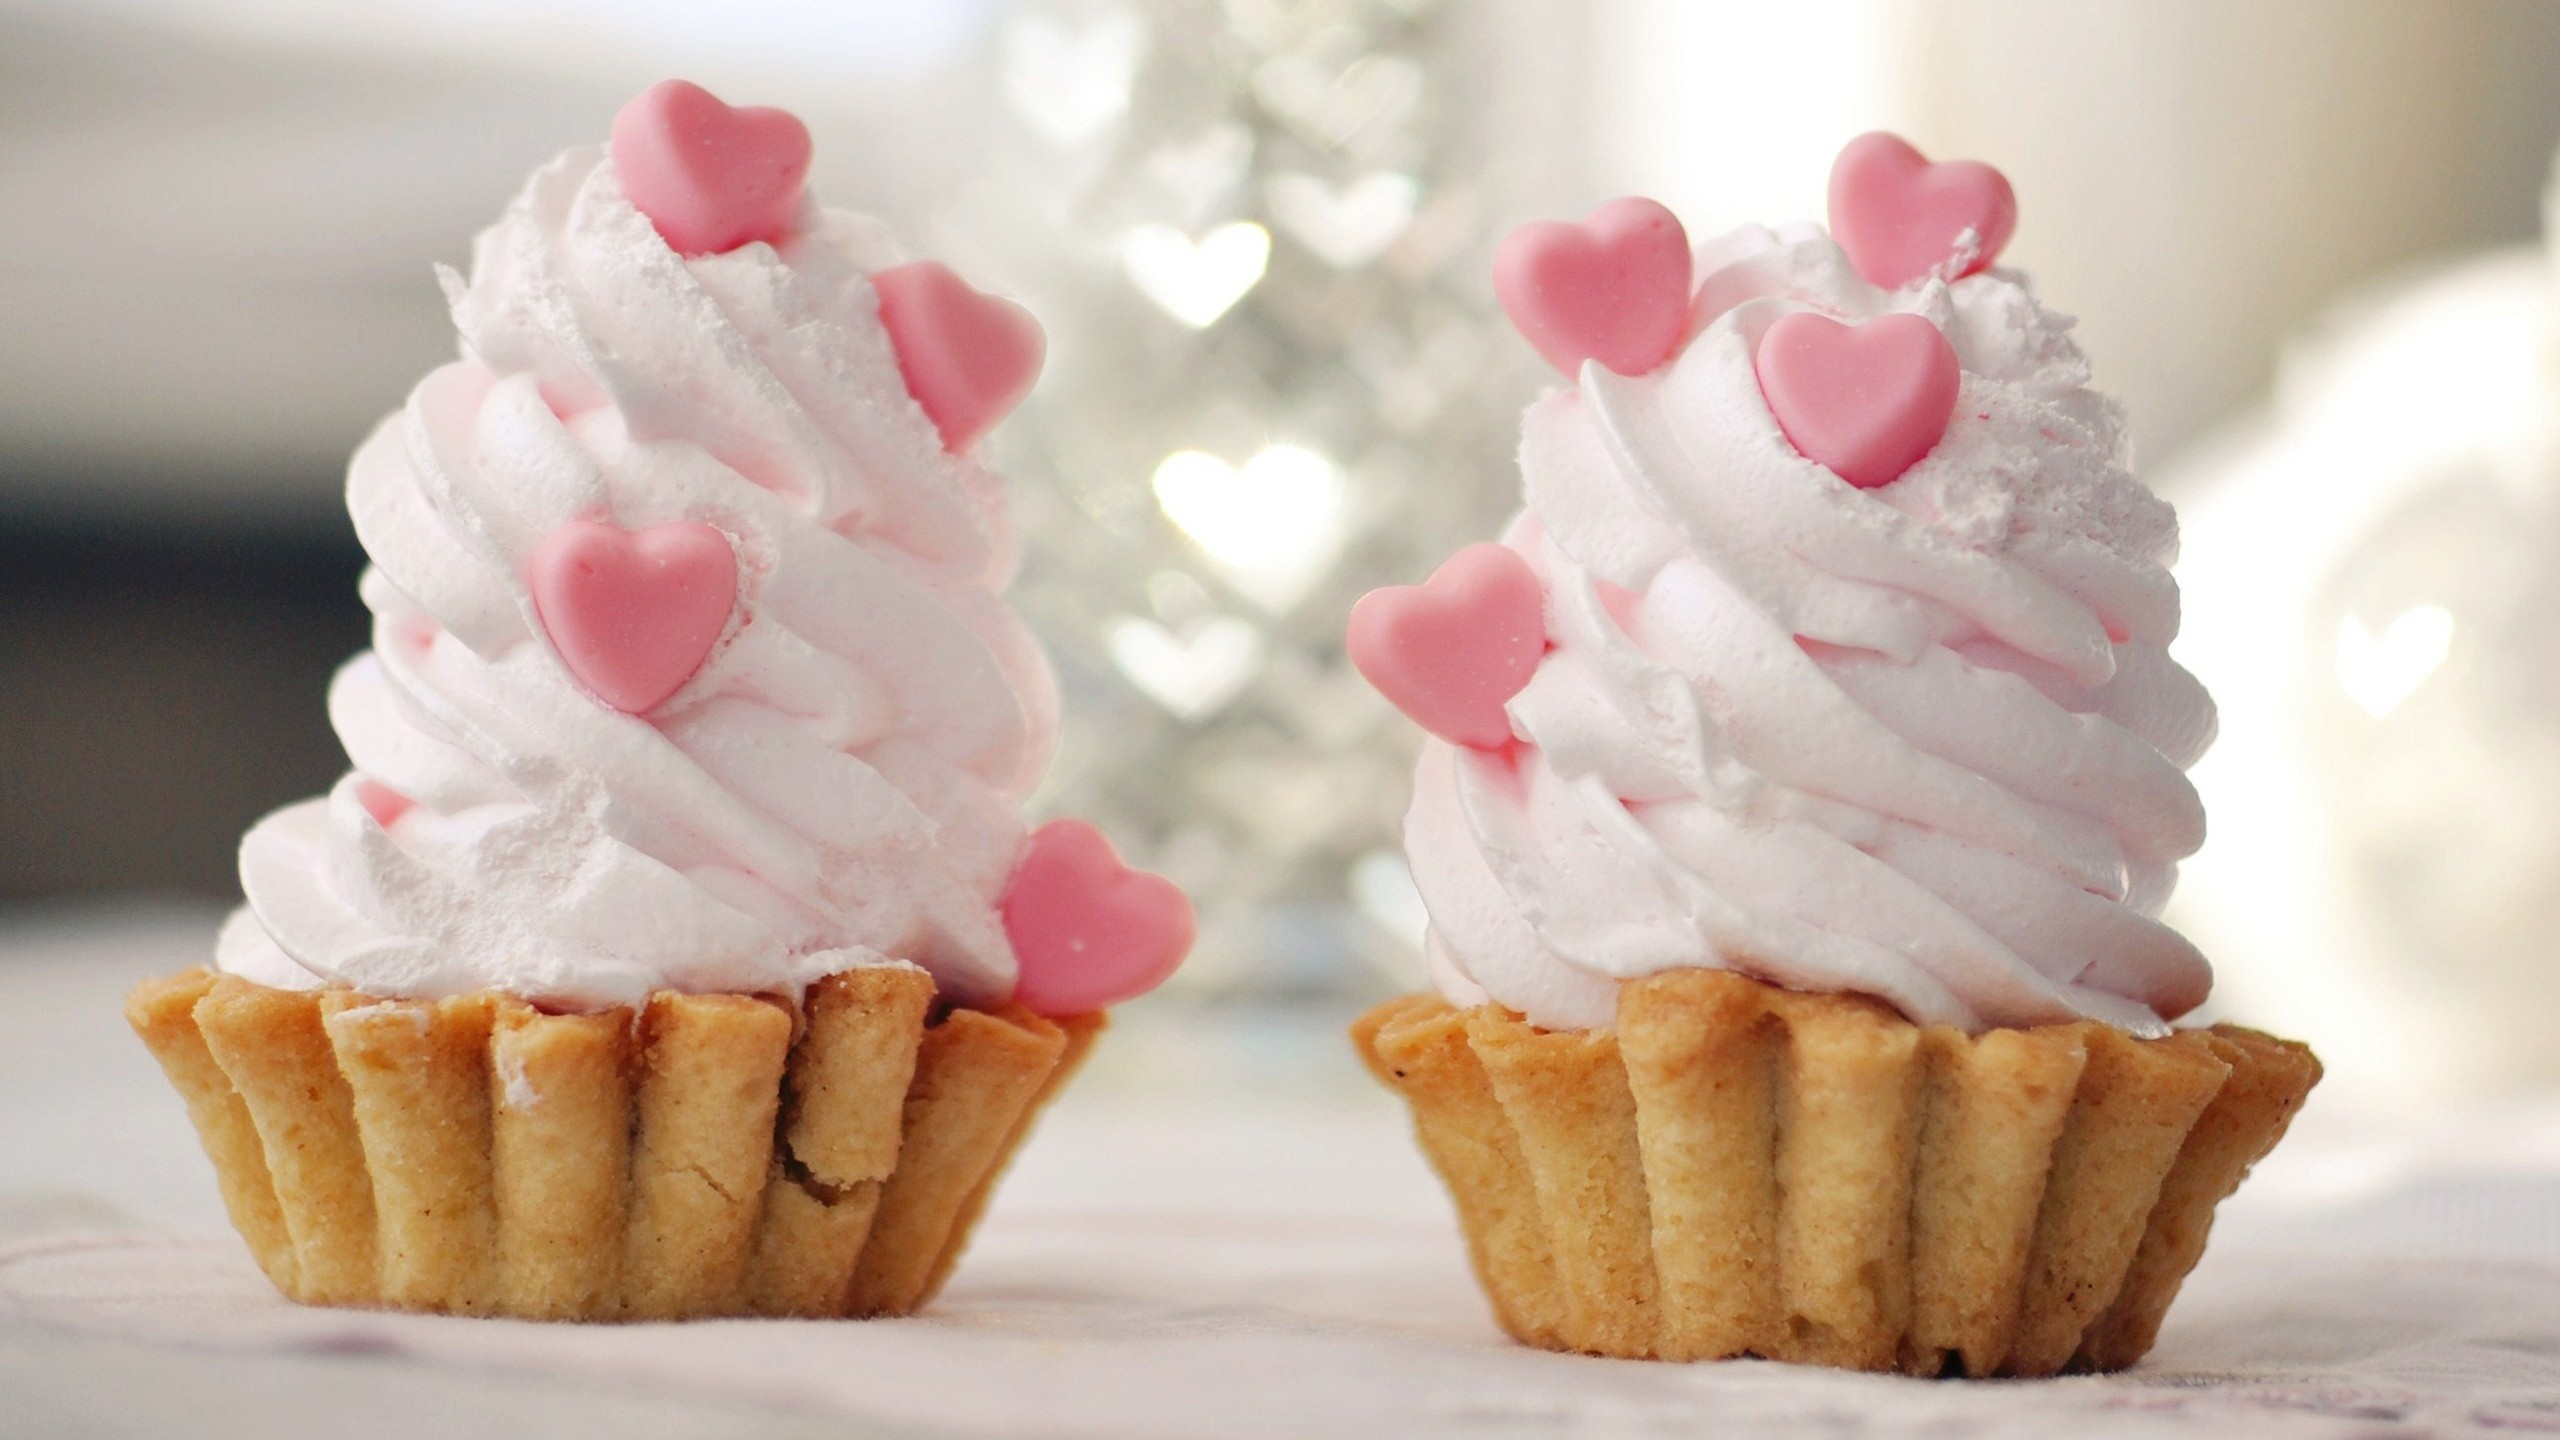 Res: 2560x1440, Download Cute Cupcakes Wallpaper 650  px High Resolution .